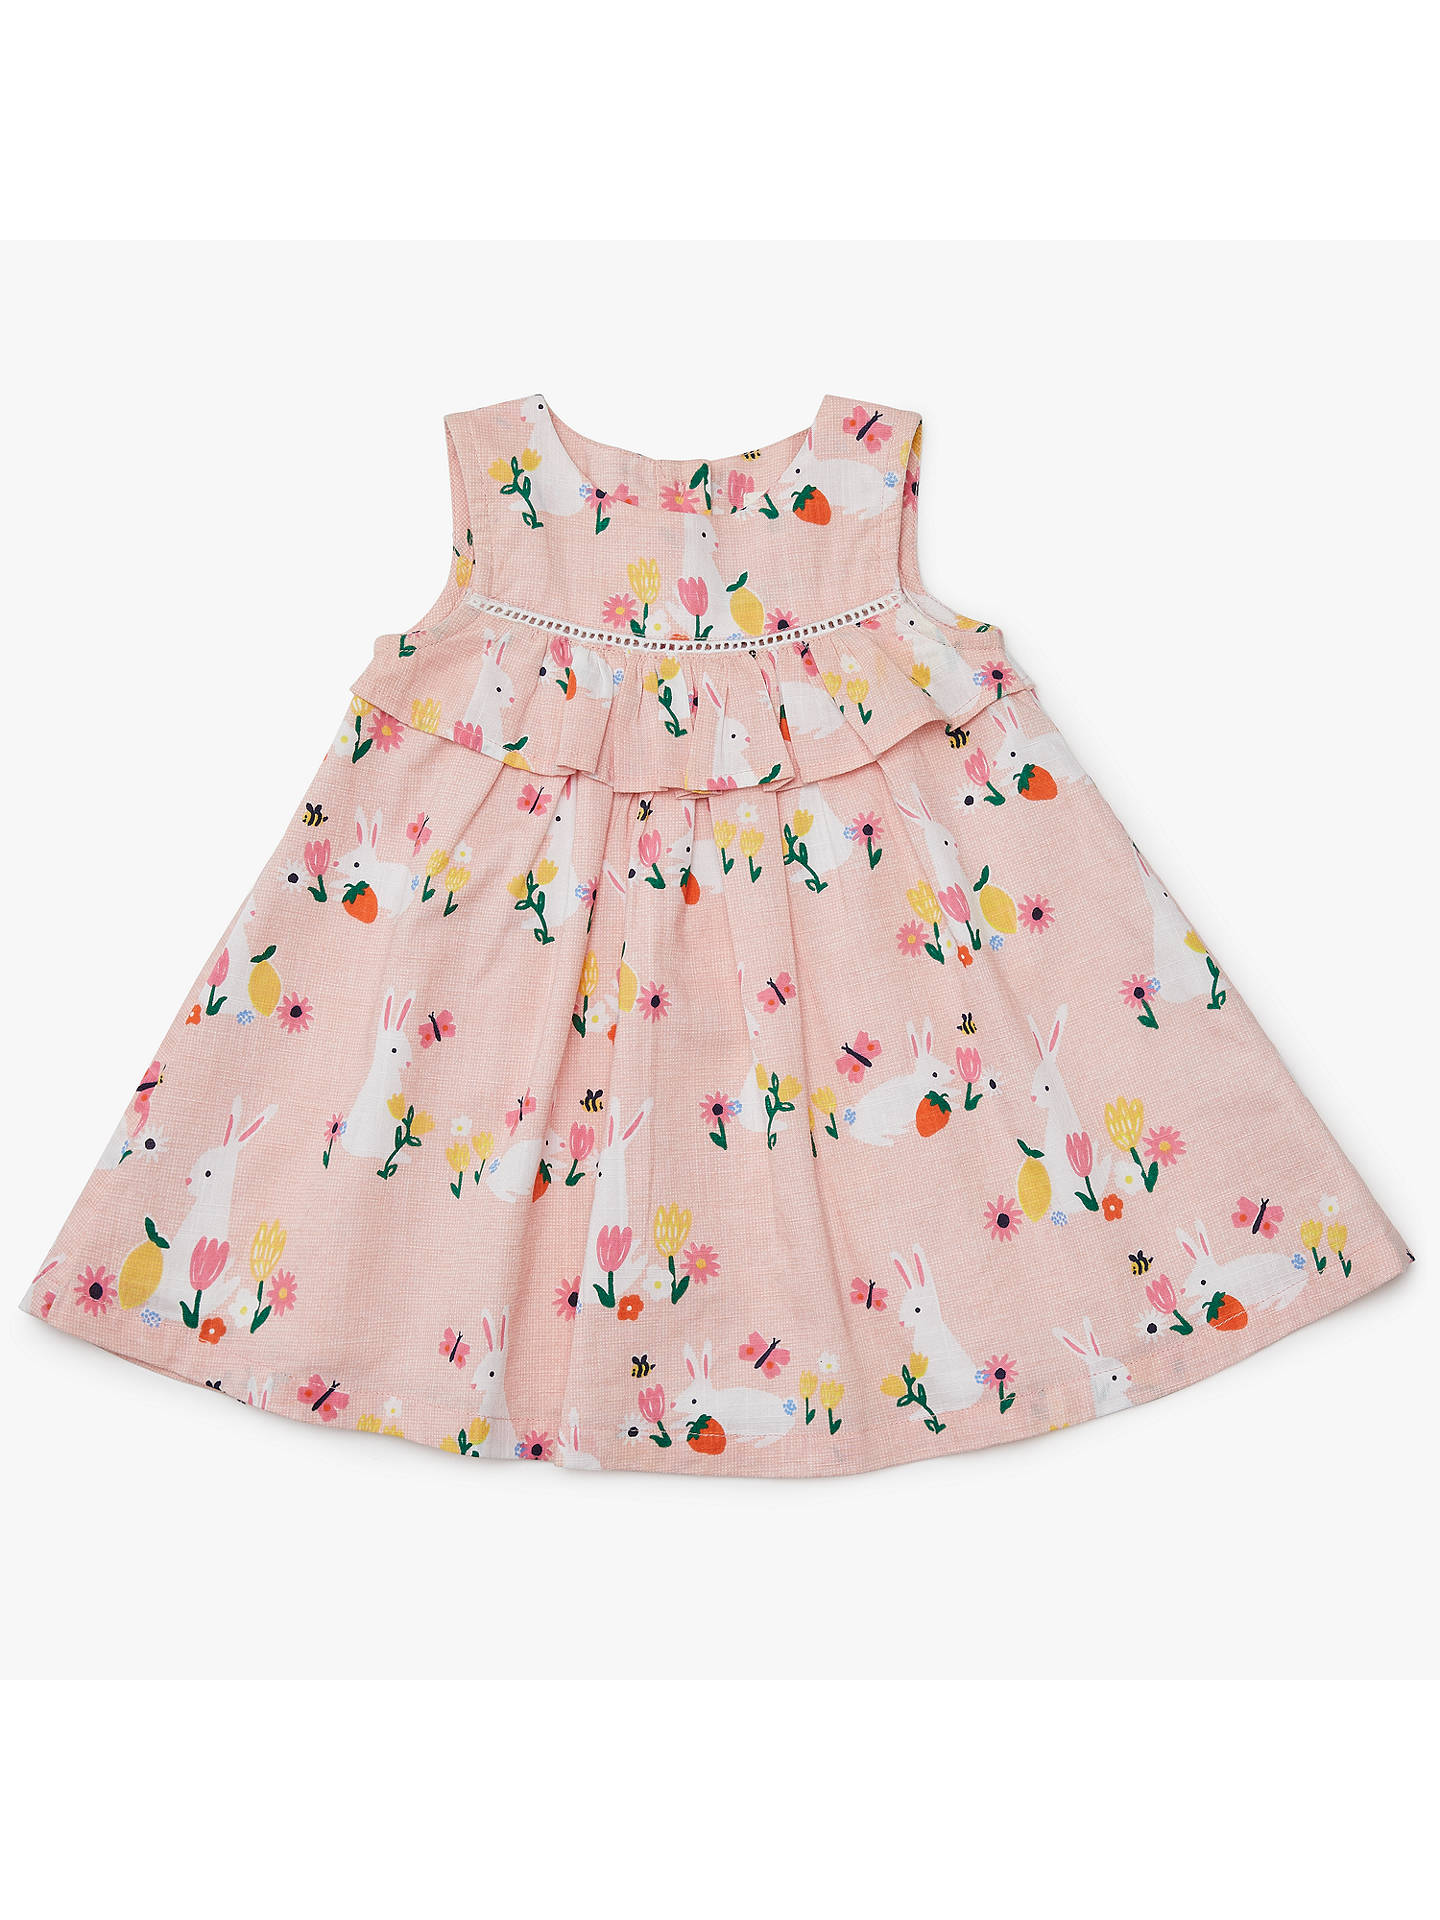 BuyJohn Lewis   Partners Baby Easter Bunny Frill Dress f6d711891b38